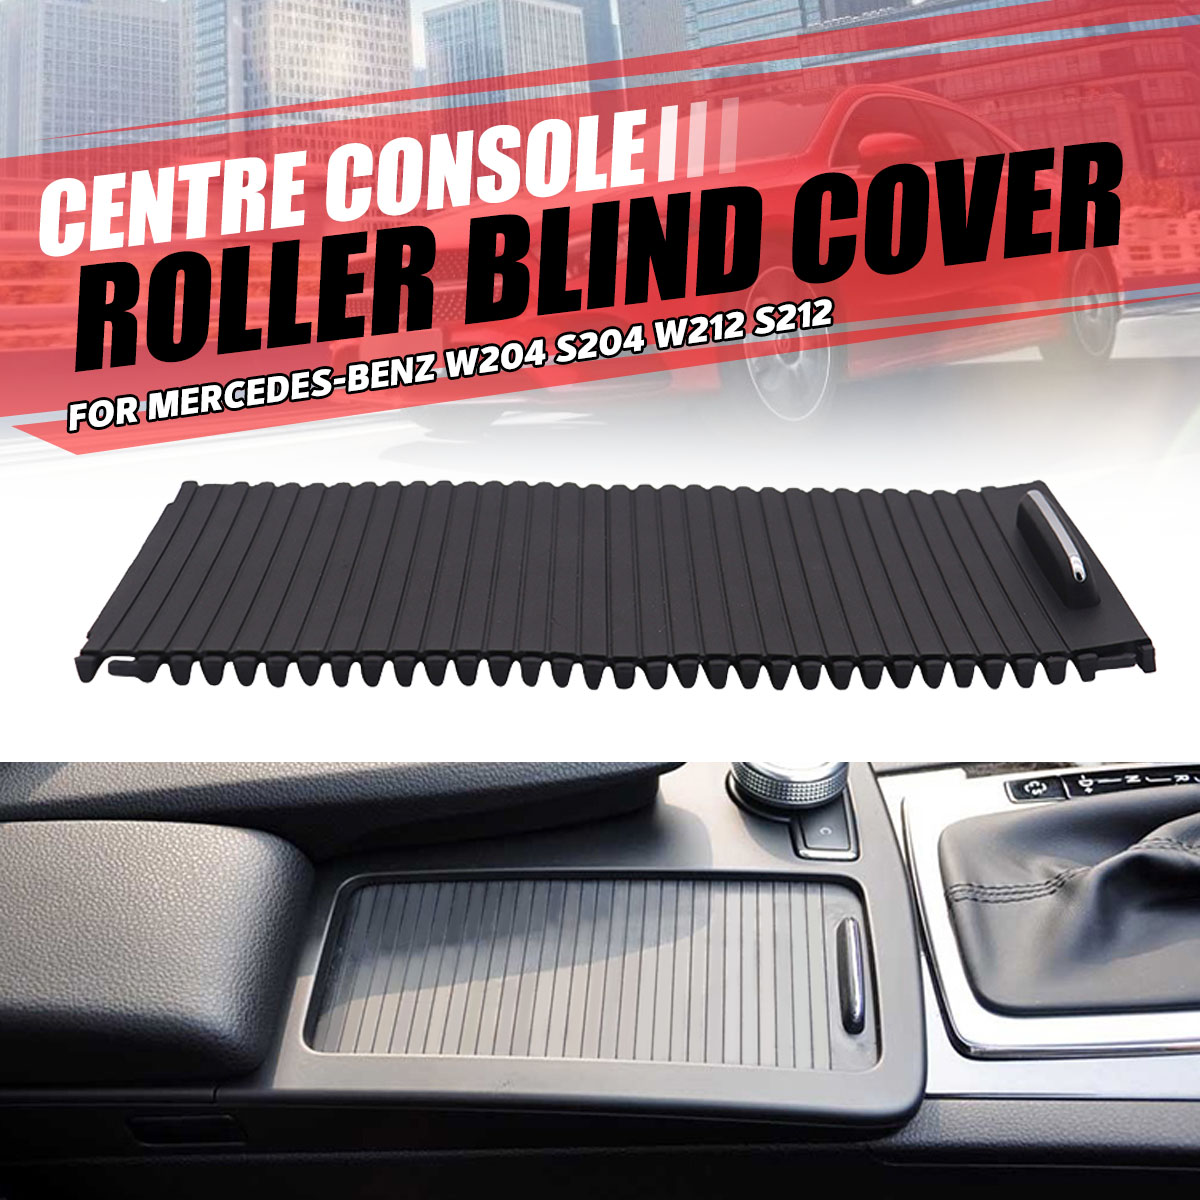 Car Inner Indoor Centre Console Roller Blind Cover For Mercedes C/E-Class W204 S204 W212 S212 A20468076079051Car Inner Indoor Centre Console Roller Blind Cover For Mercedes C/E-Class W204 S204 W212 S212 A20468076079051